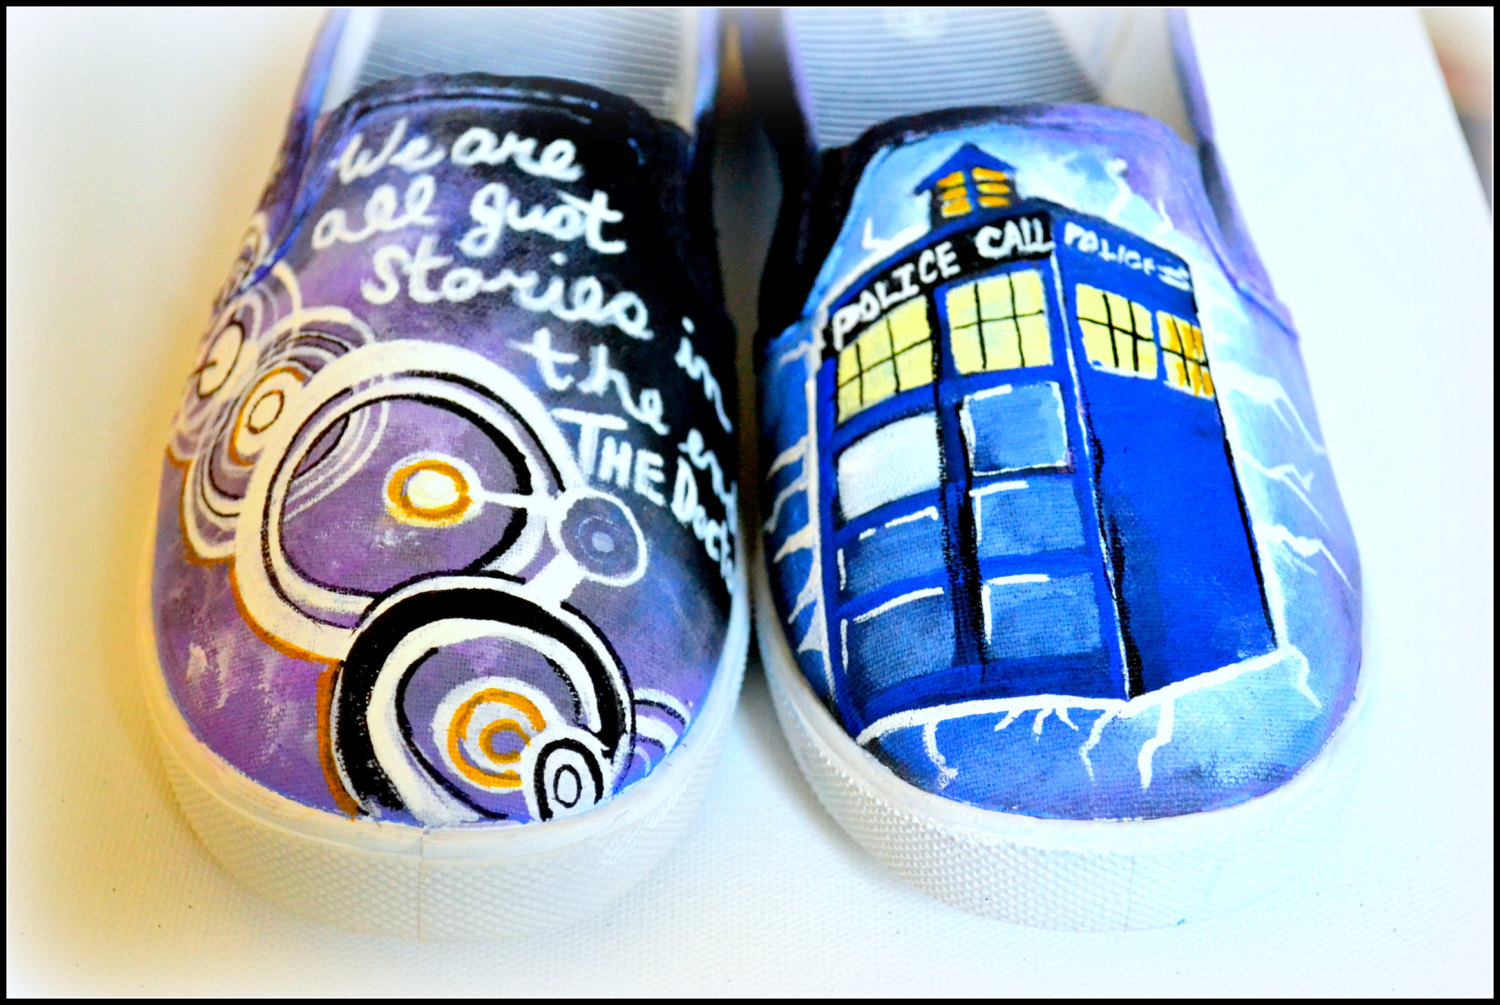 Drawn vans dr who Shoes Shoes Shoes Custom Doctor